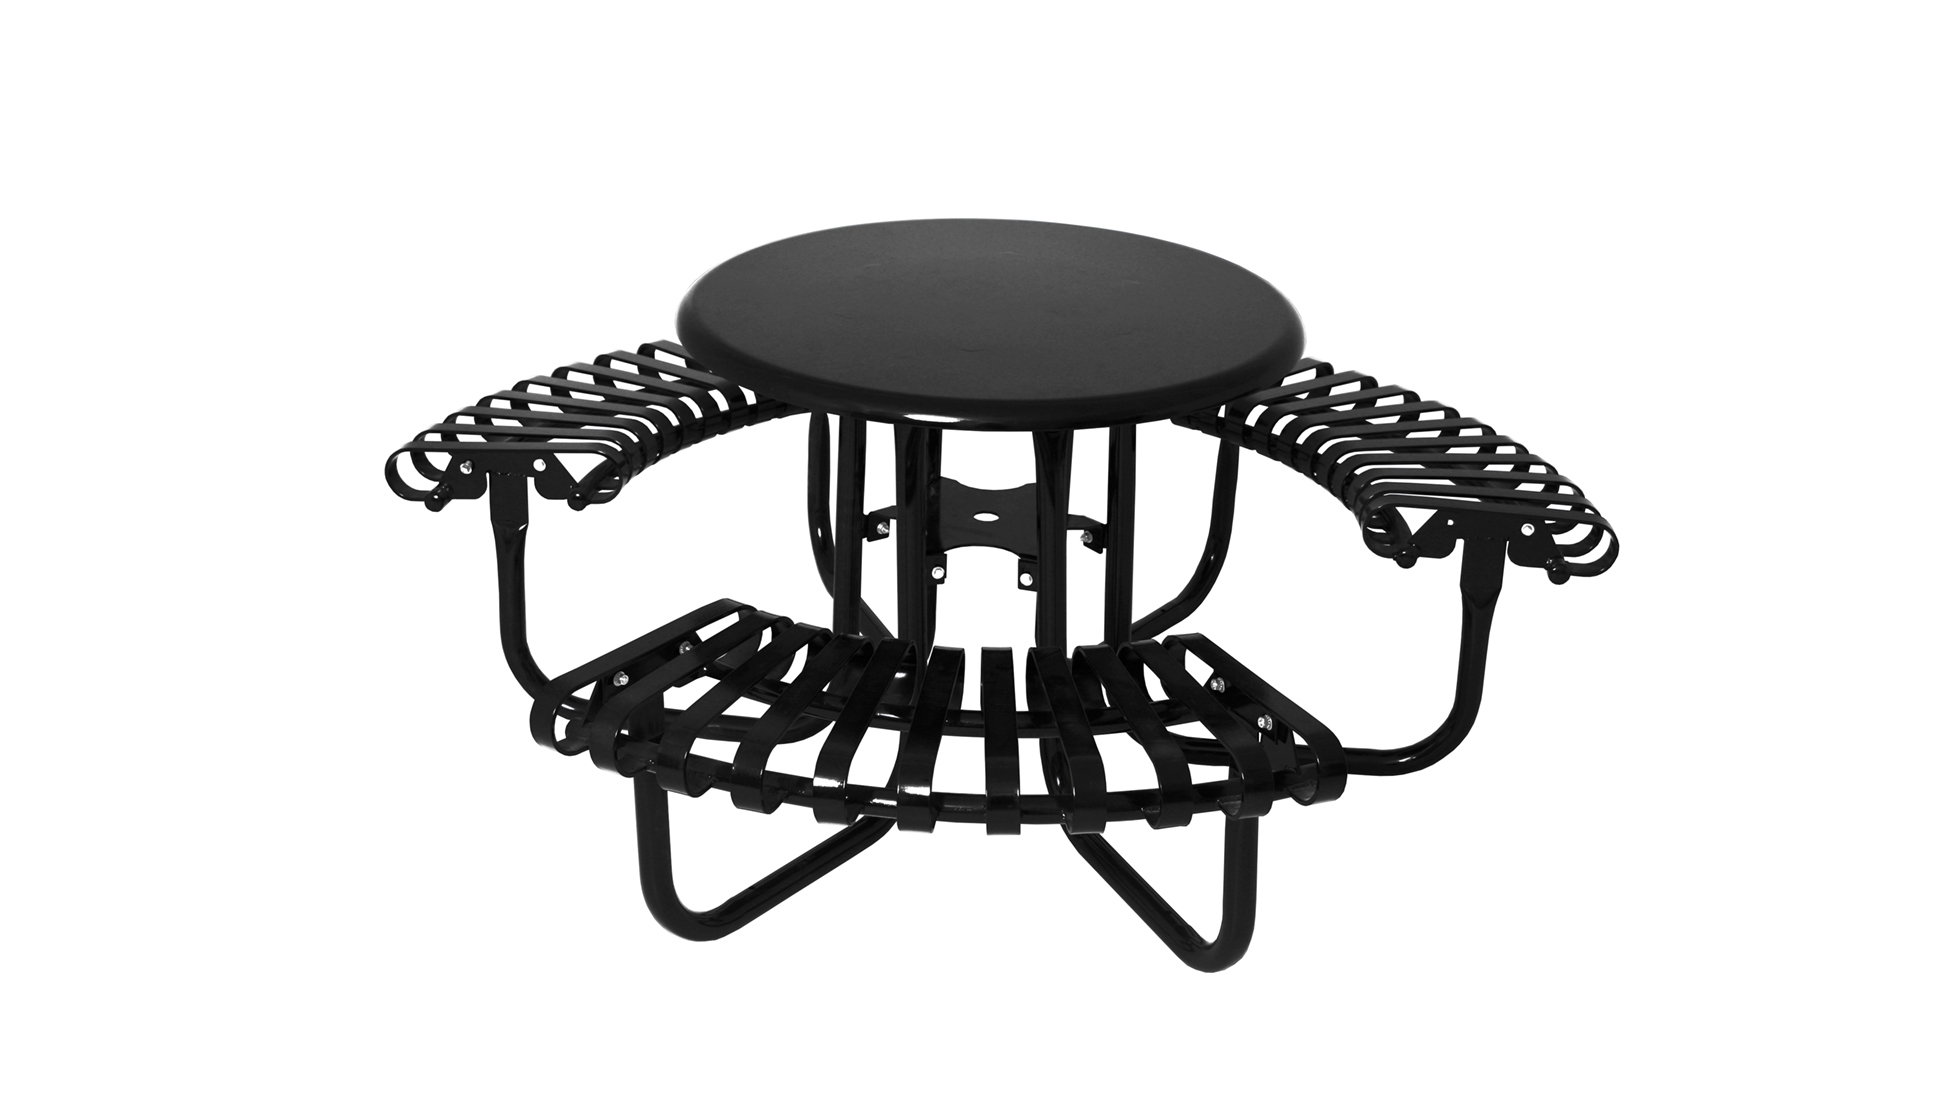 Series 1000 Round Table with Seats